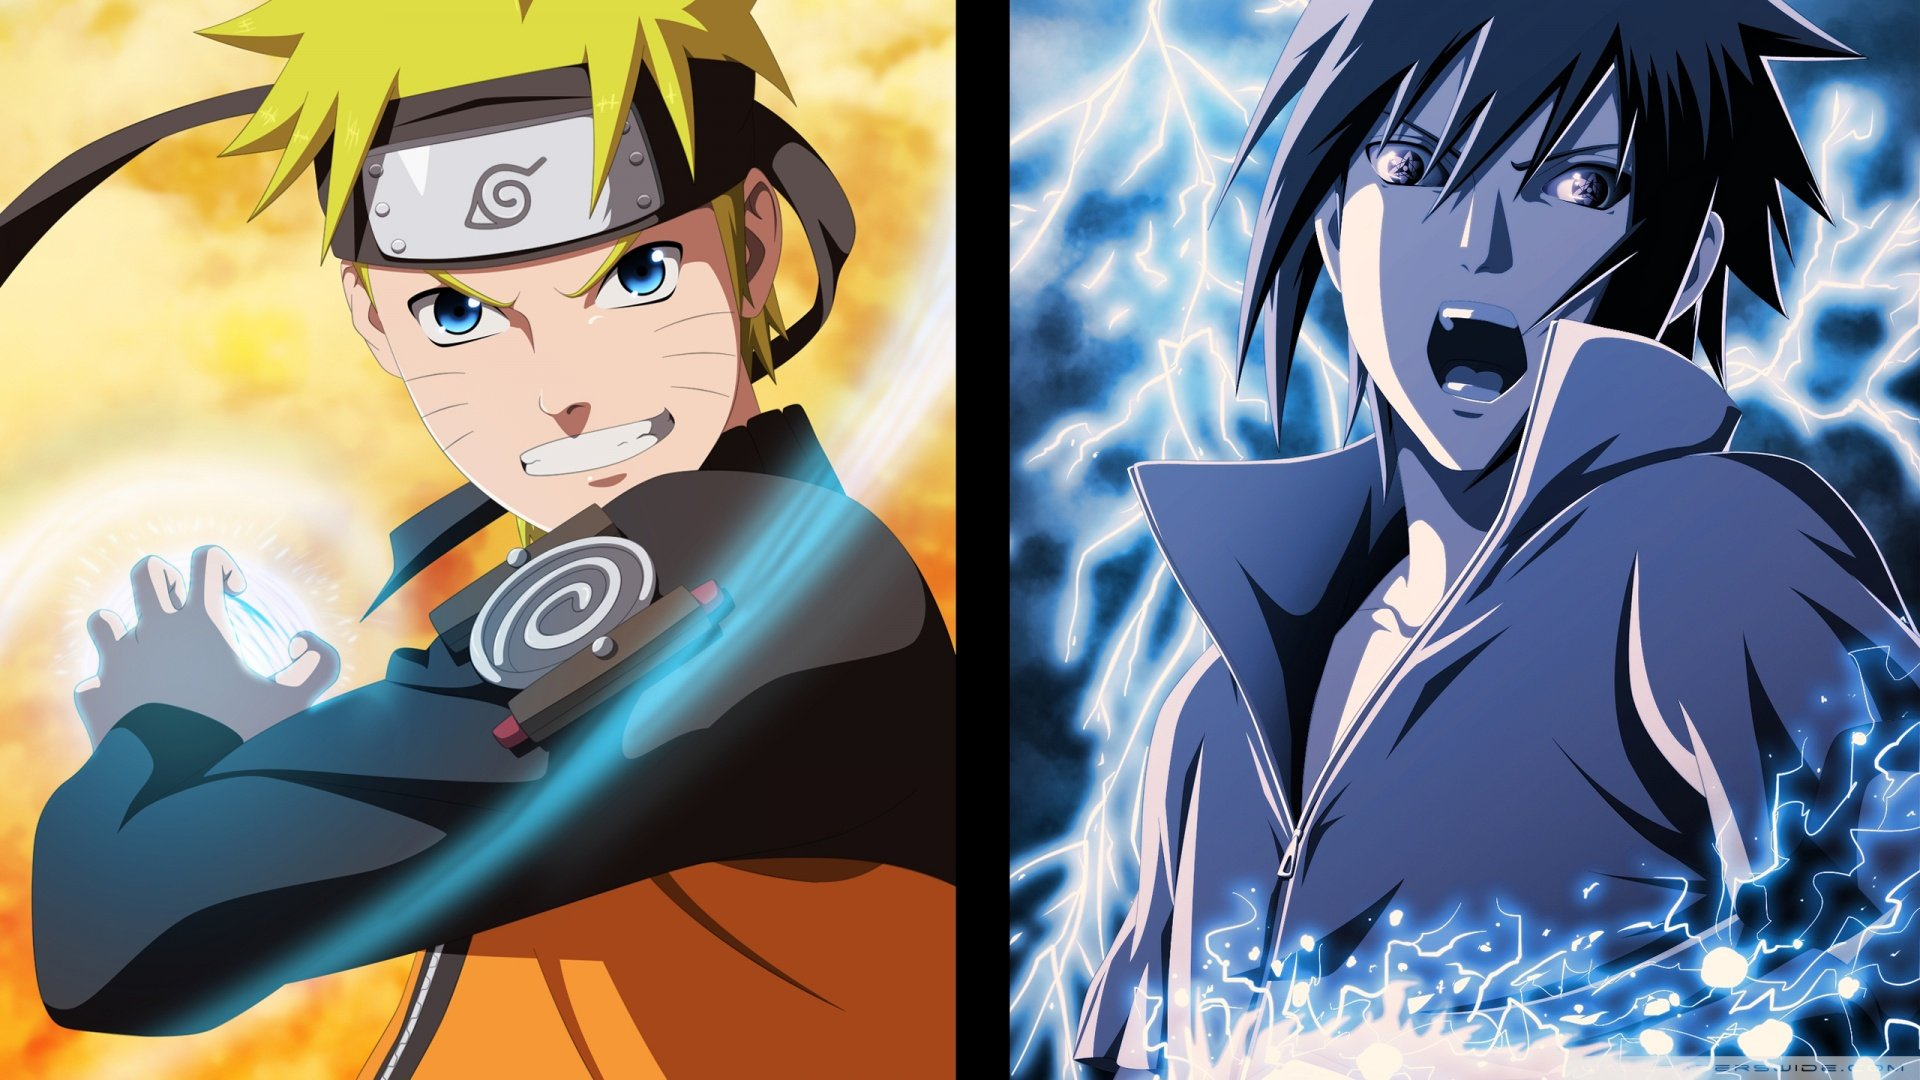 Naruto-Vs-Sasuke-Wallpaper-HD-Resolution